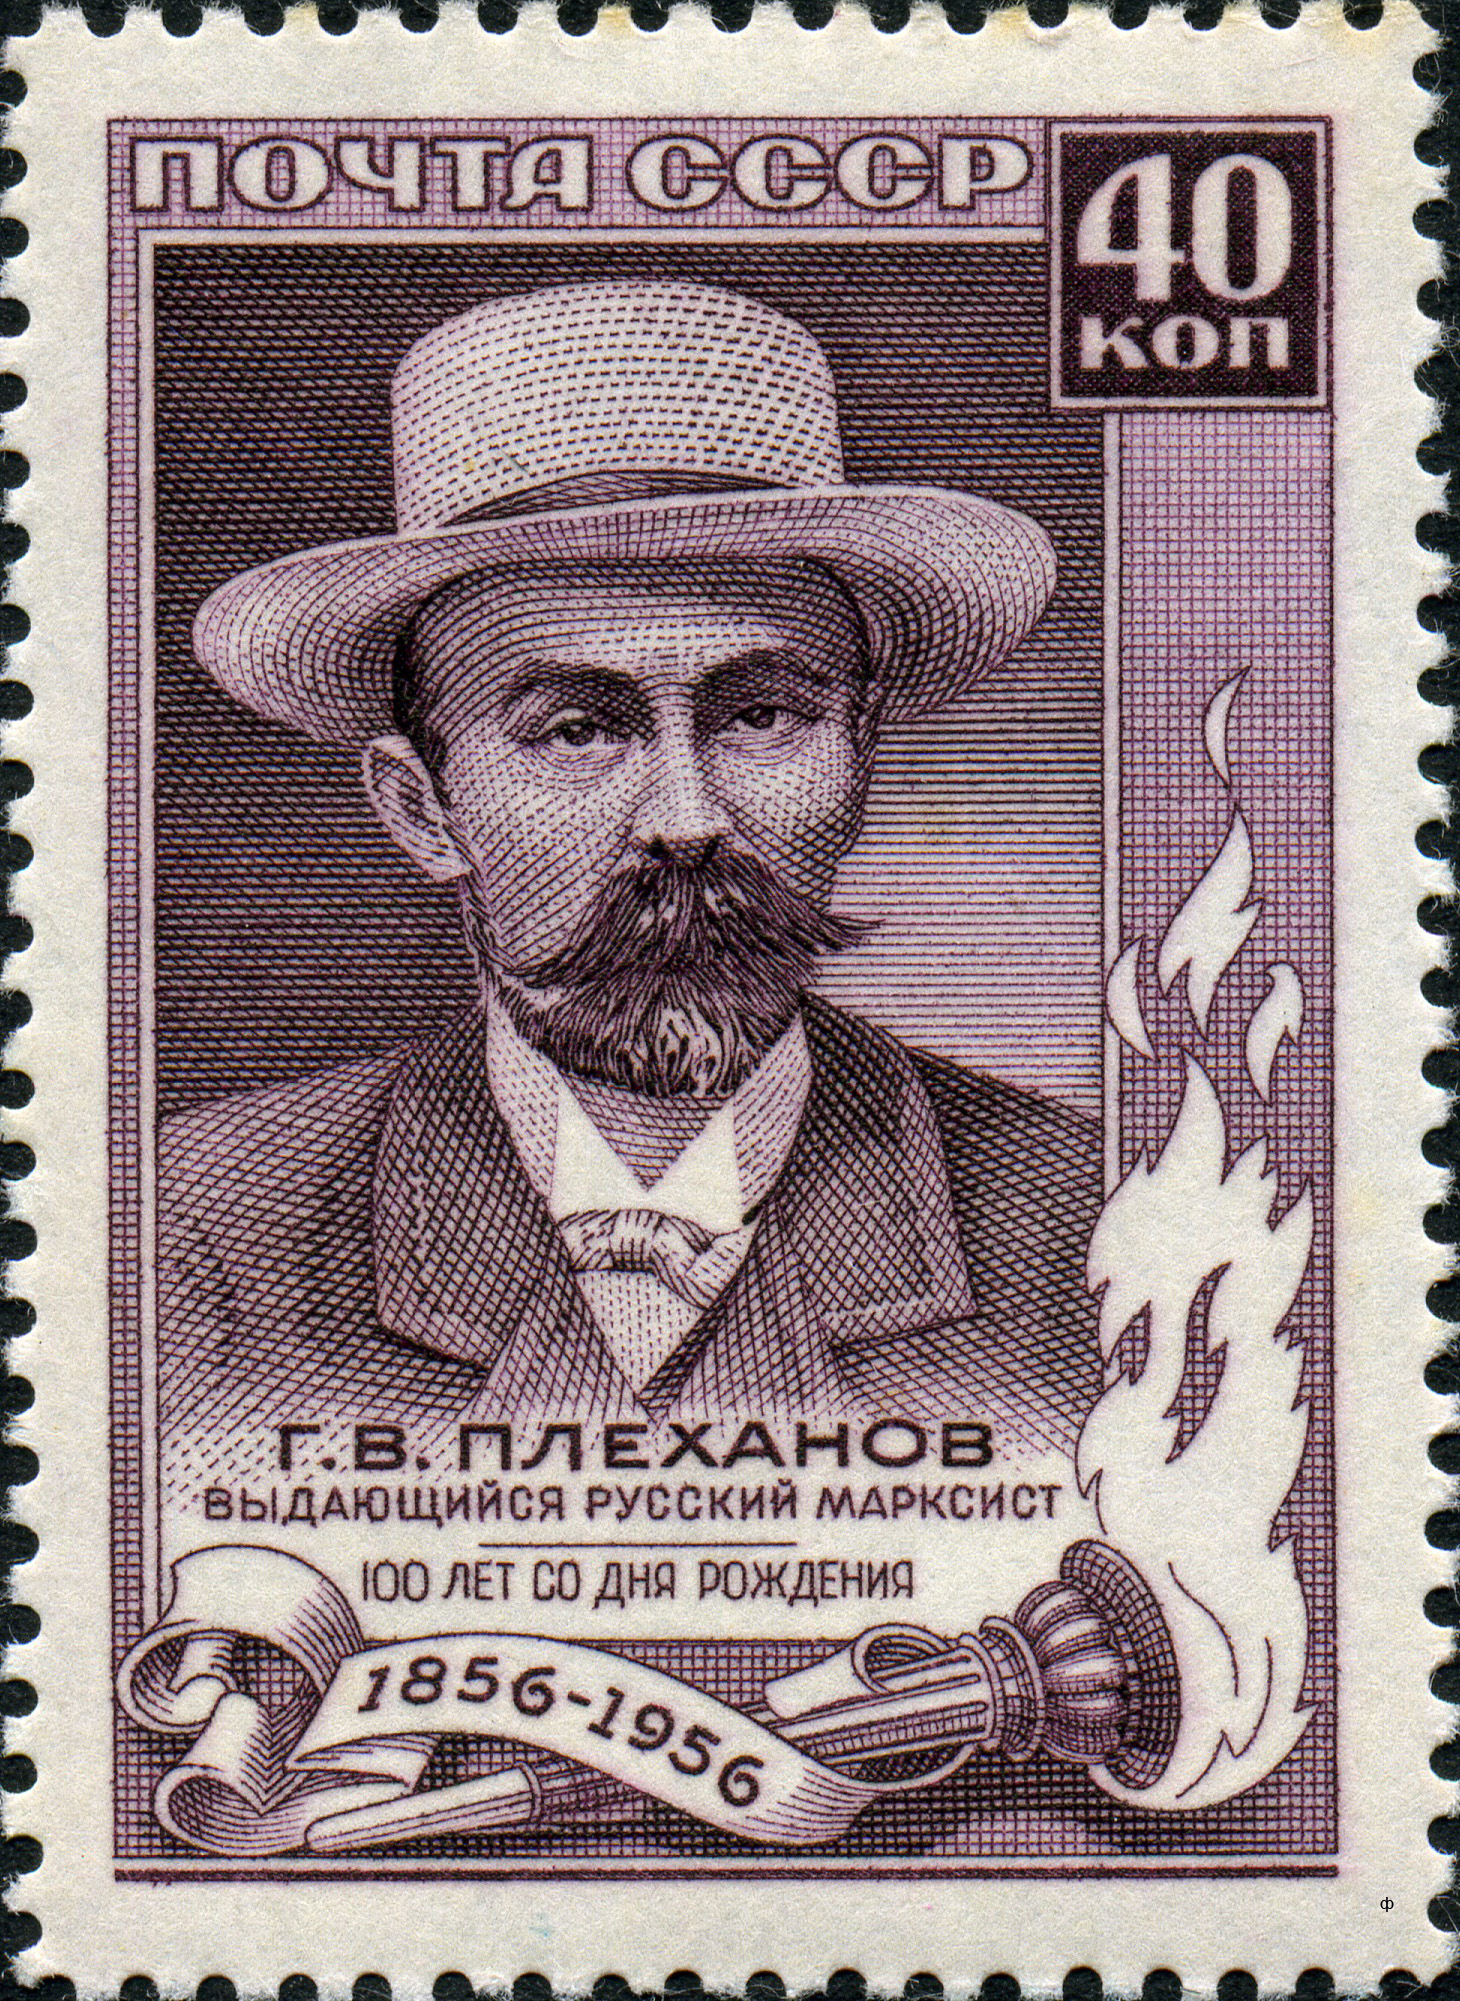 http://academic.ru/pictures/wiki/files/83/Stamp_of_USSR_1998.jpg